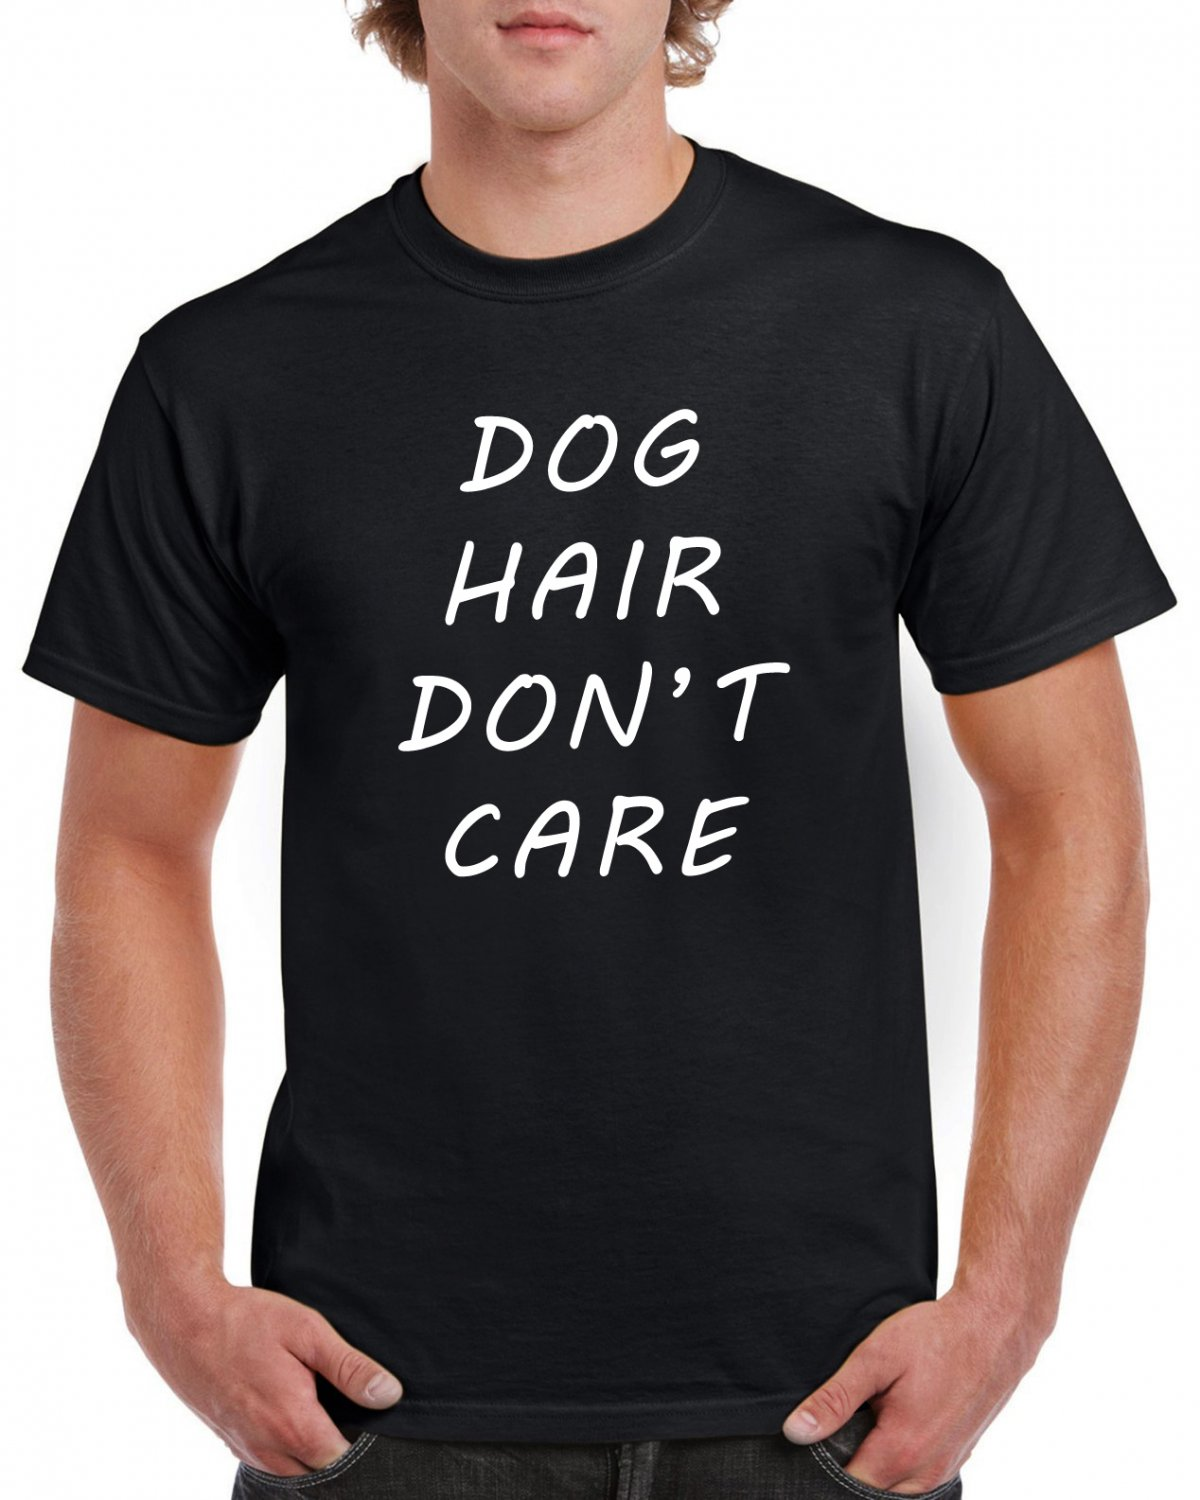 Dog Hair Don't Care T-shirt Dog Lovers Owner Puppy Tshirt Cool Unisex Top Tee